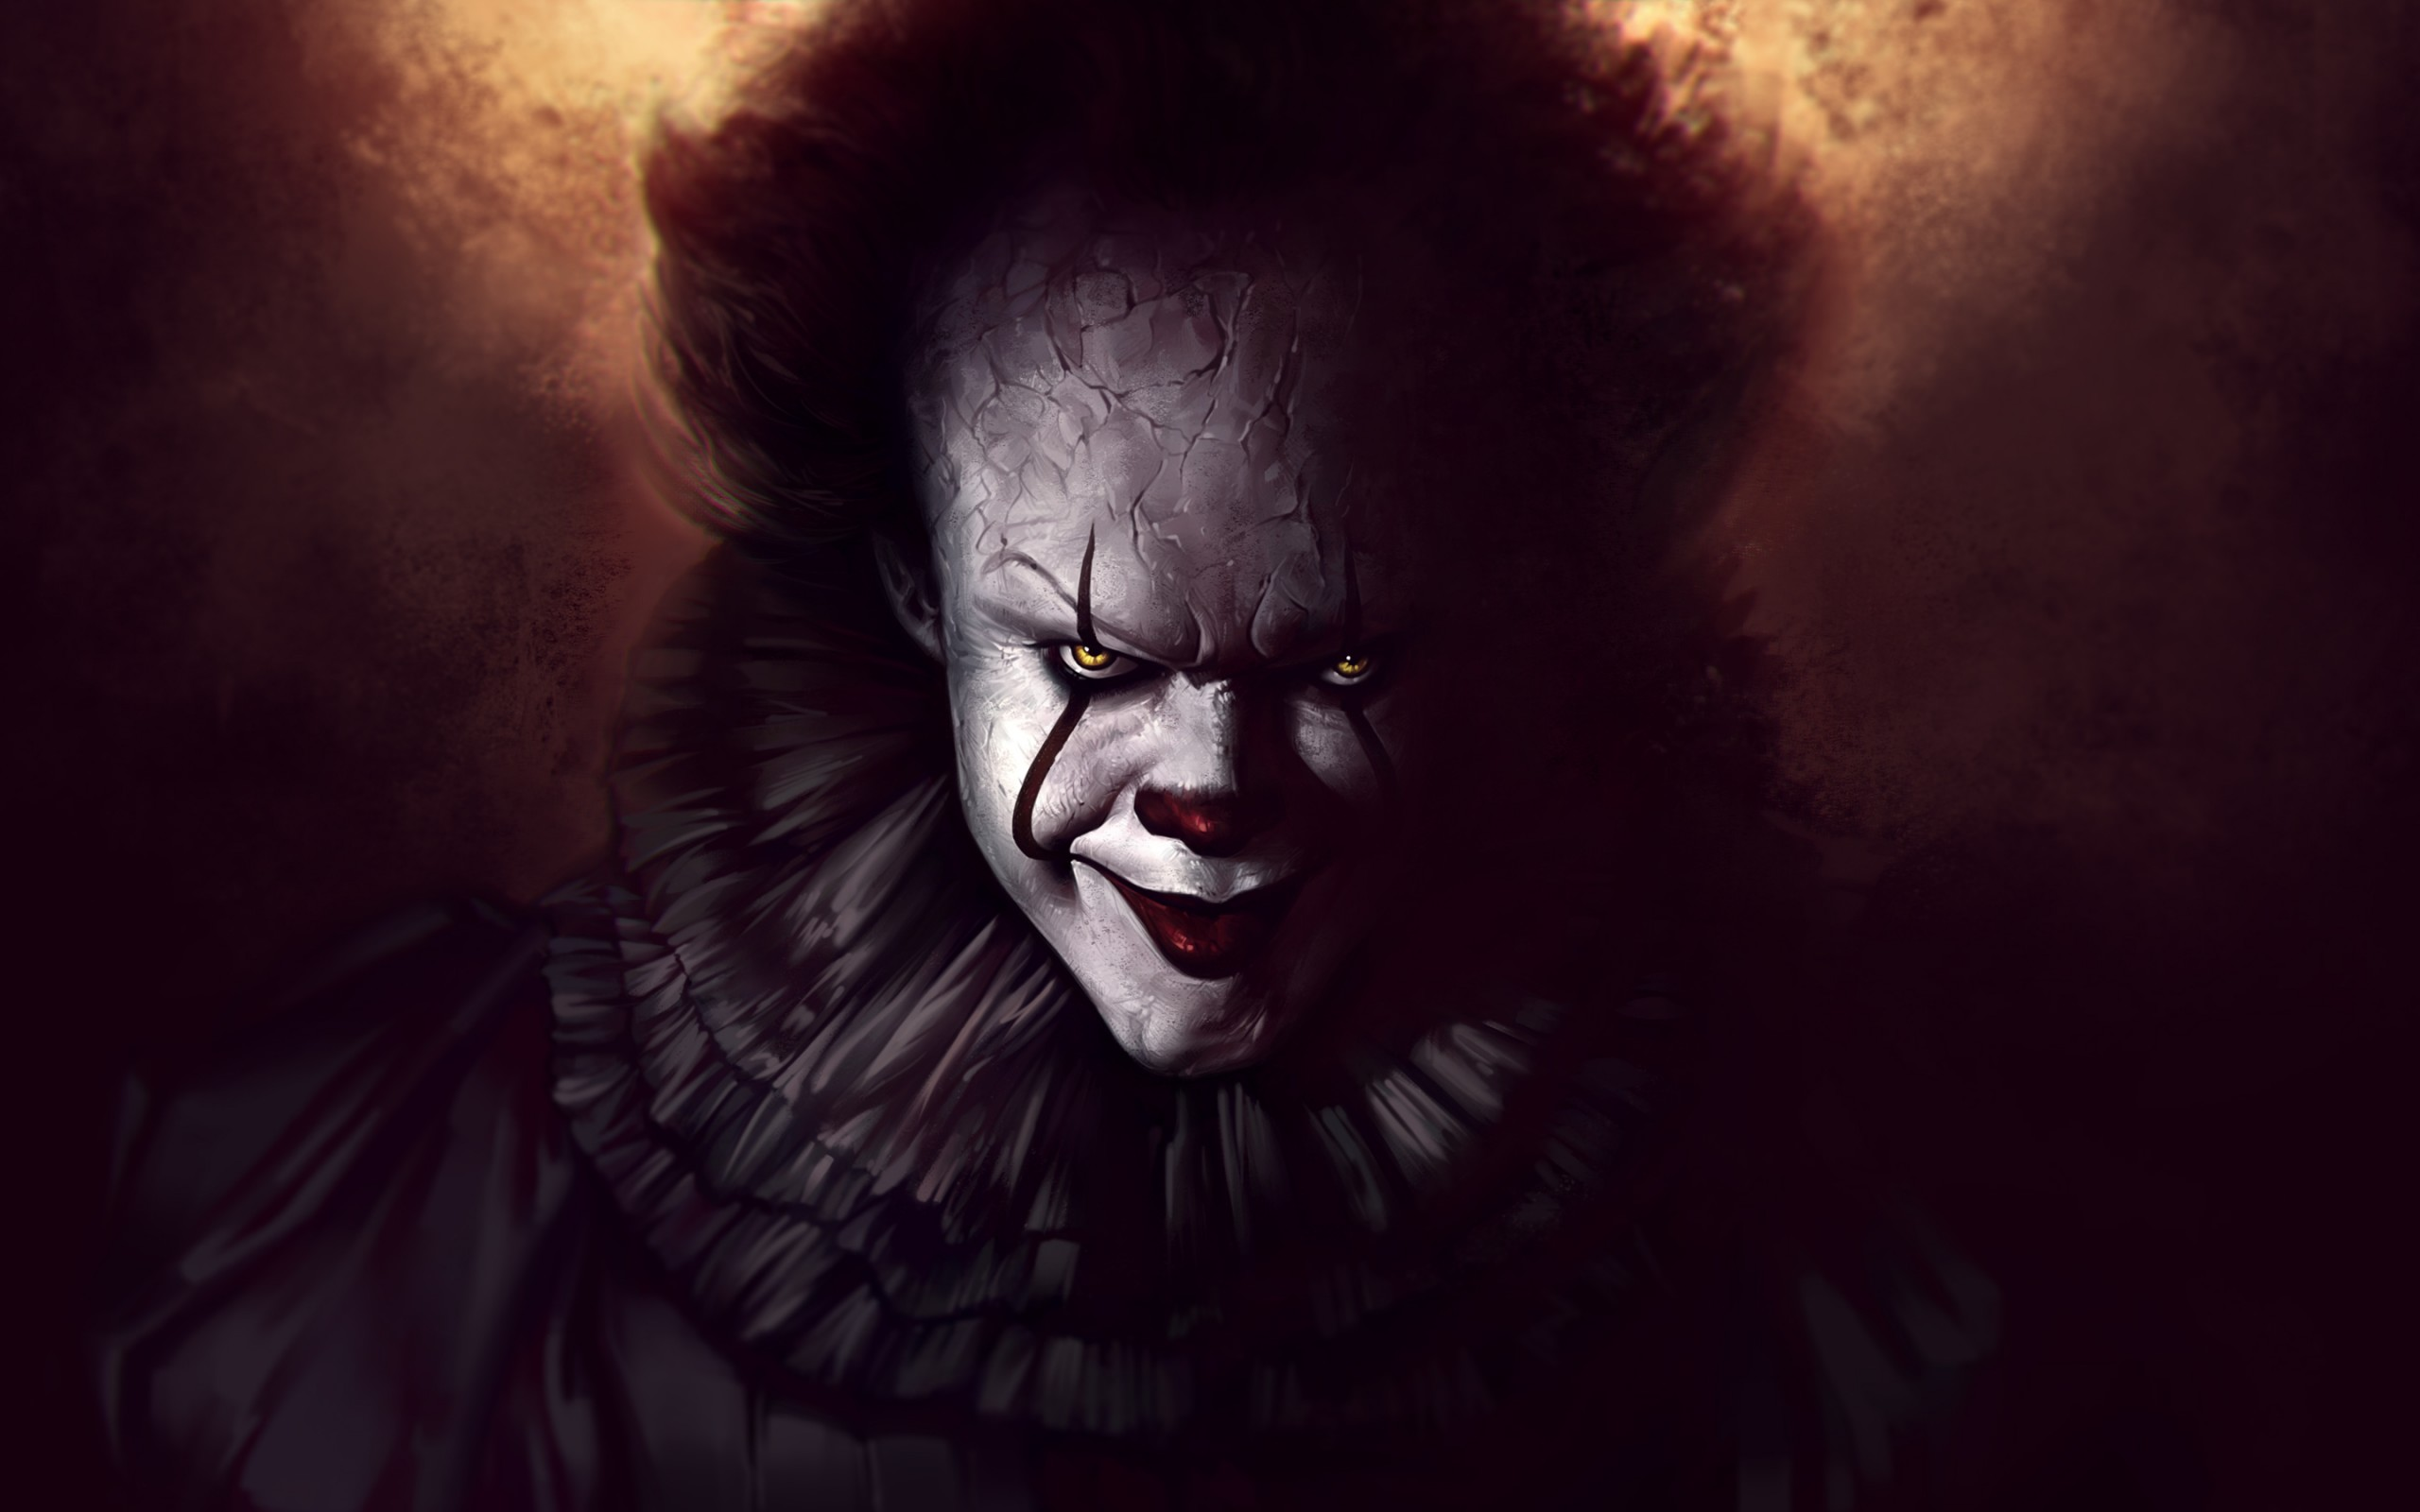 Why So Serious Wallpaper Iphone 6 Pennywise The Dancing Clown Wallpapers Hd Wallpapers